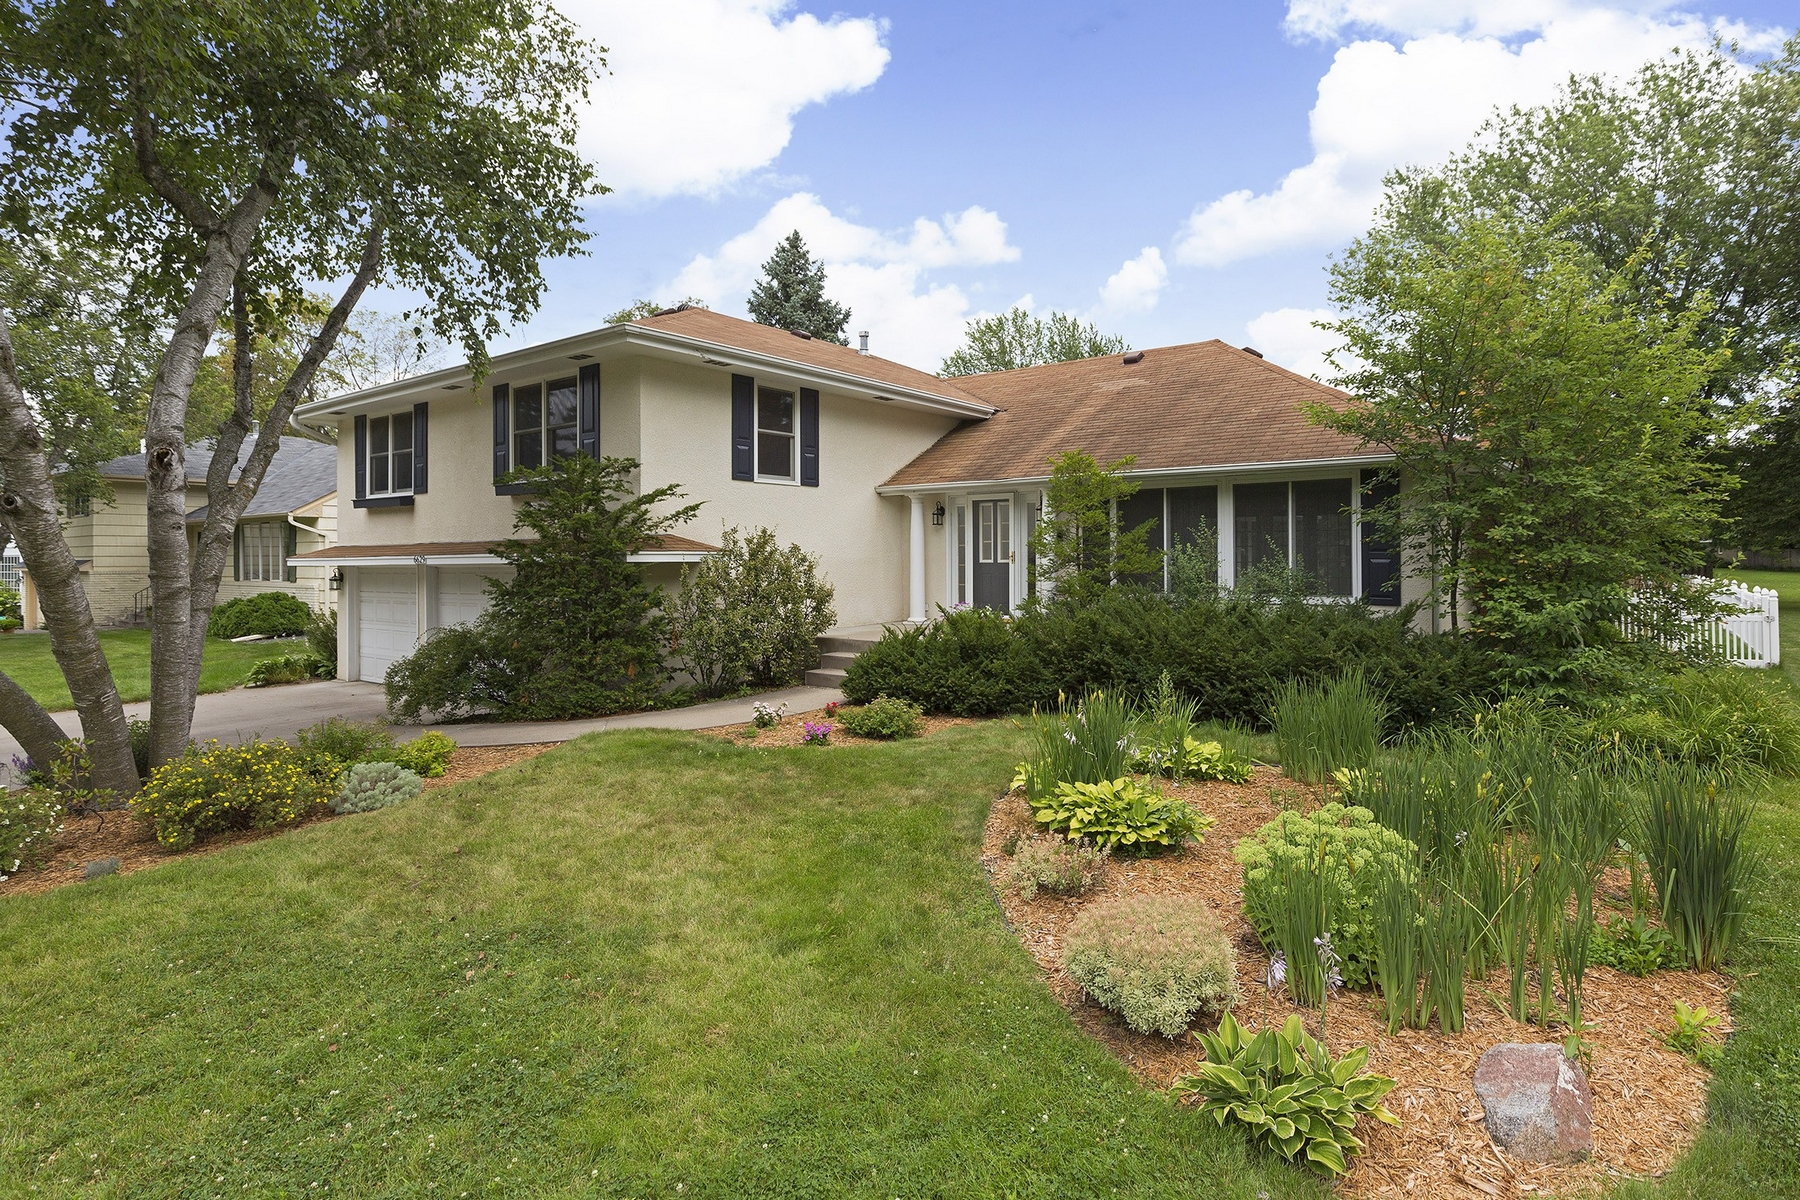 Single Family Home for Sale at 6629 Brittany Road Edina, Minnesota 55435 United States